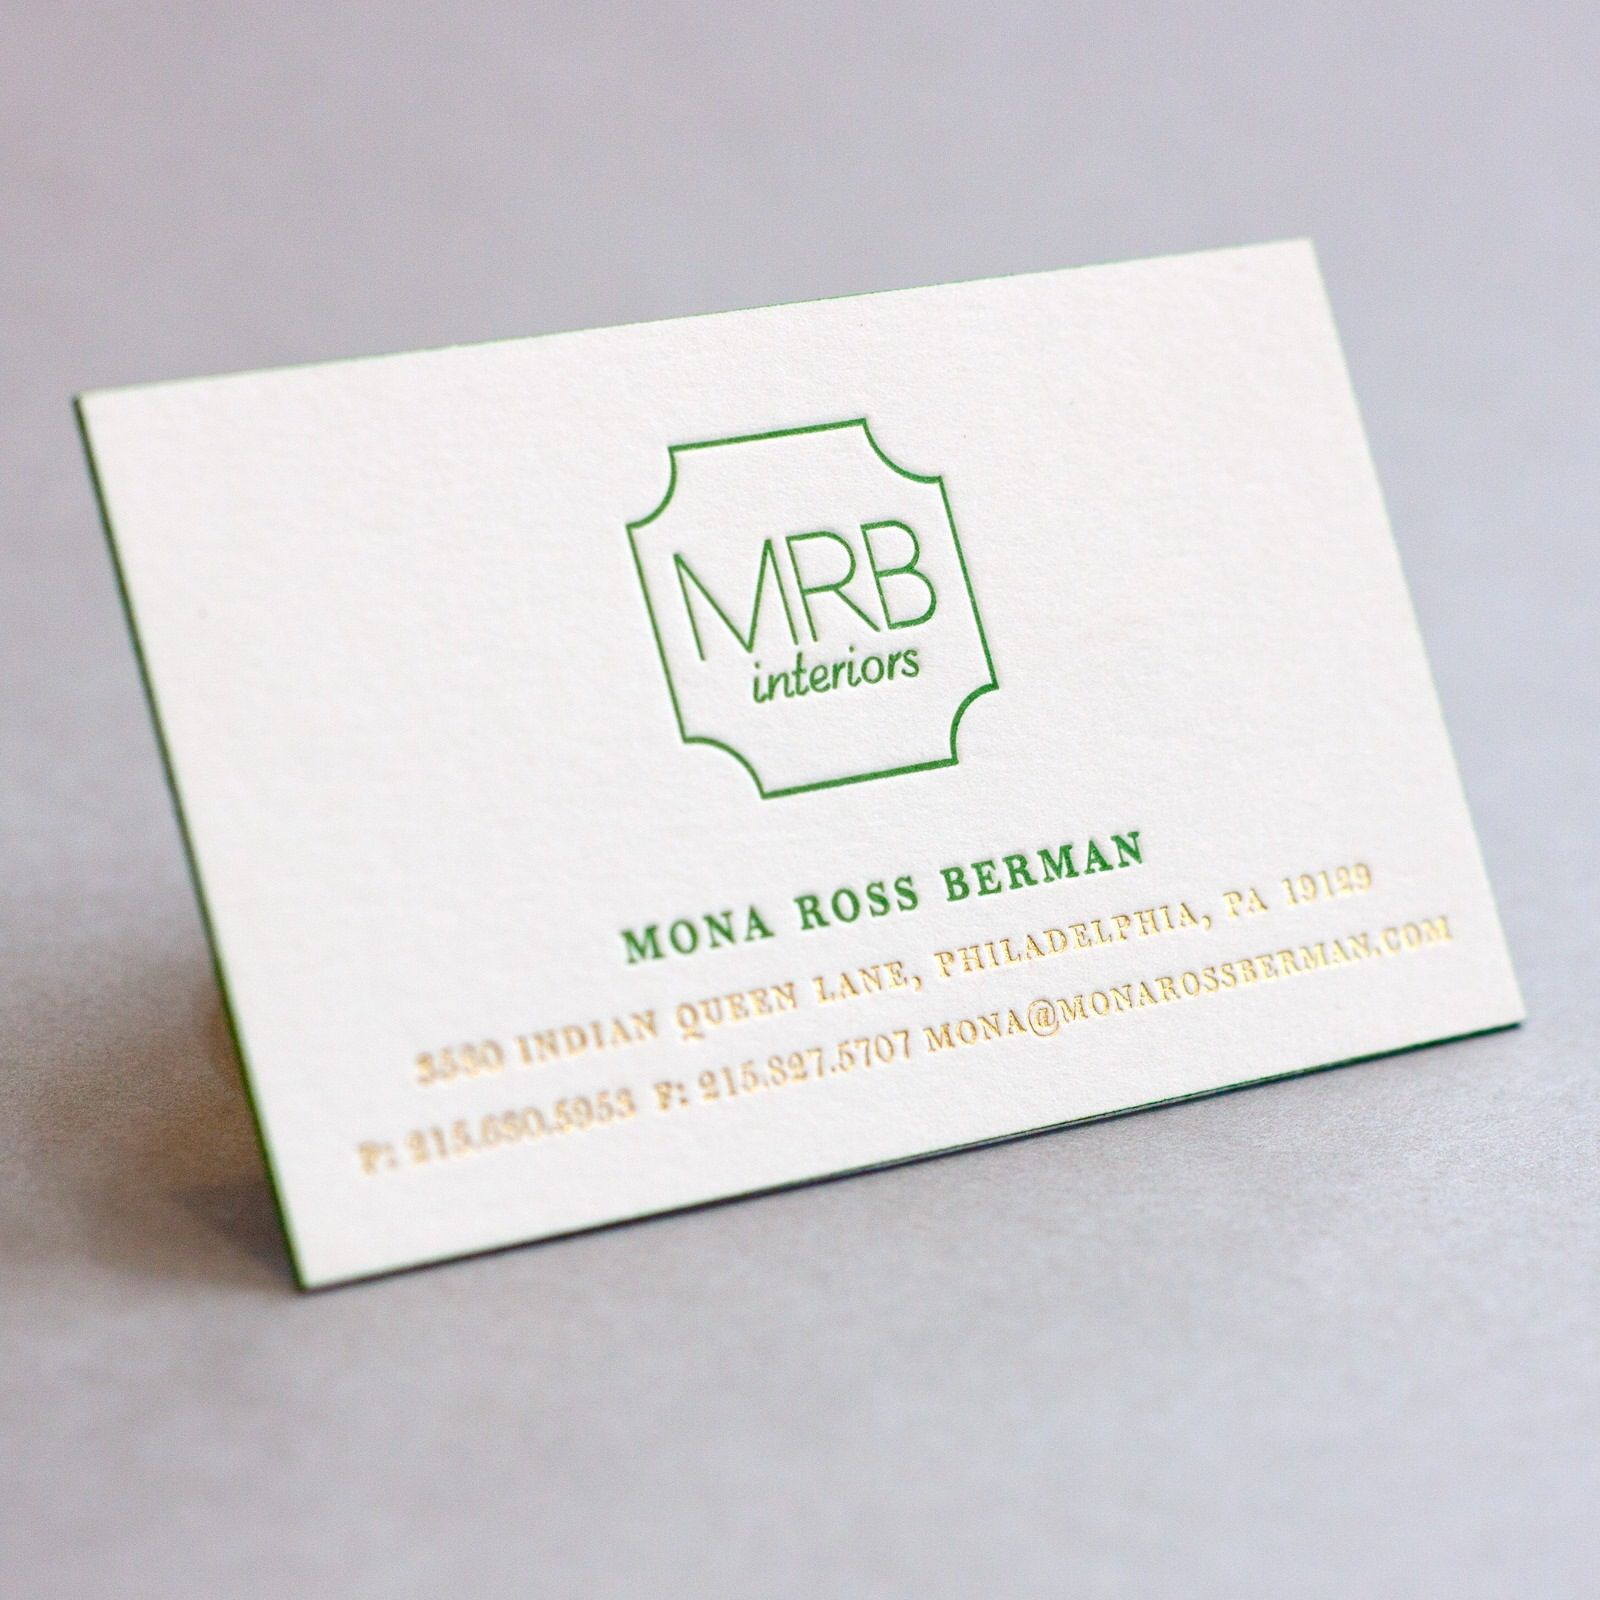 Letterpress business cards with gold foil stamping and edge ...